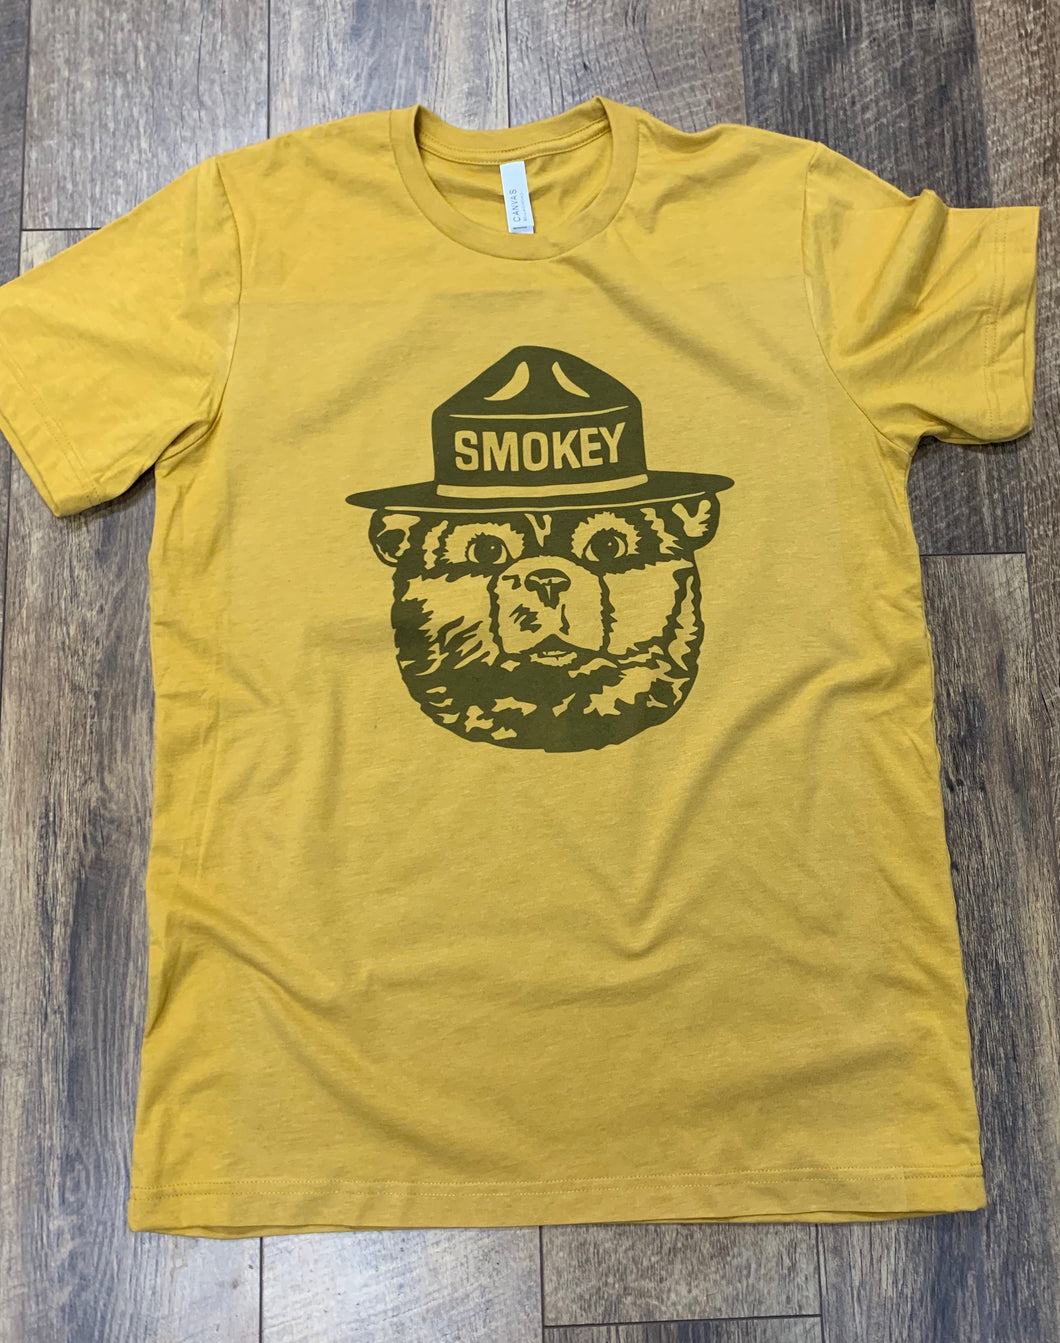 Smokey the Bear vintage style t-shirt